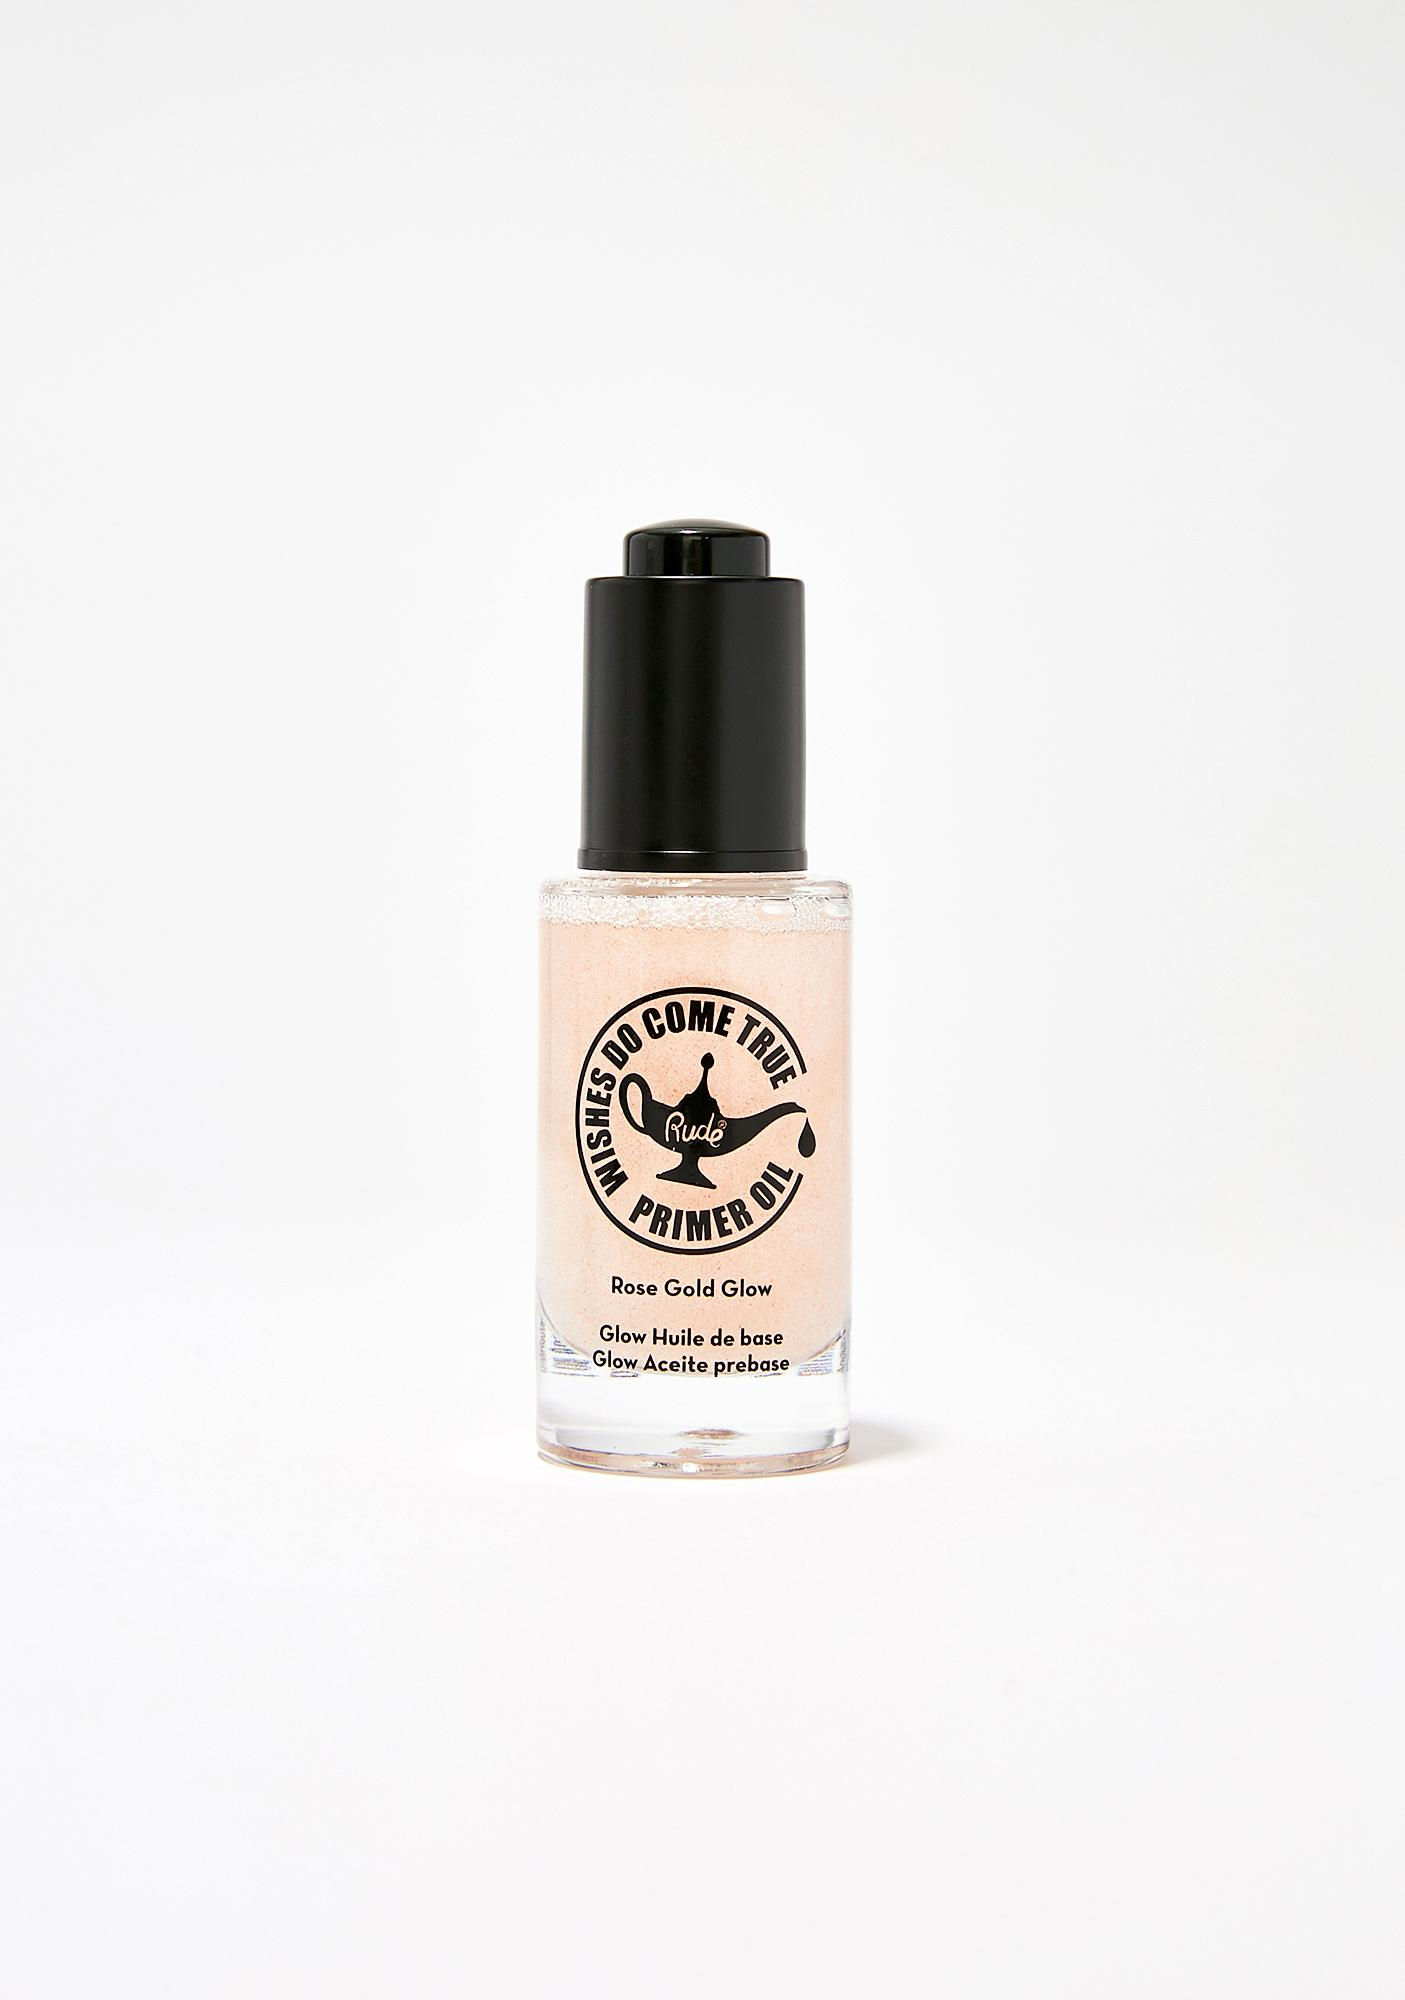 Rude Cosmetics Wishes Do Come True Glow Primer Oil